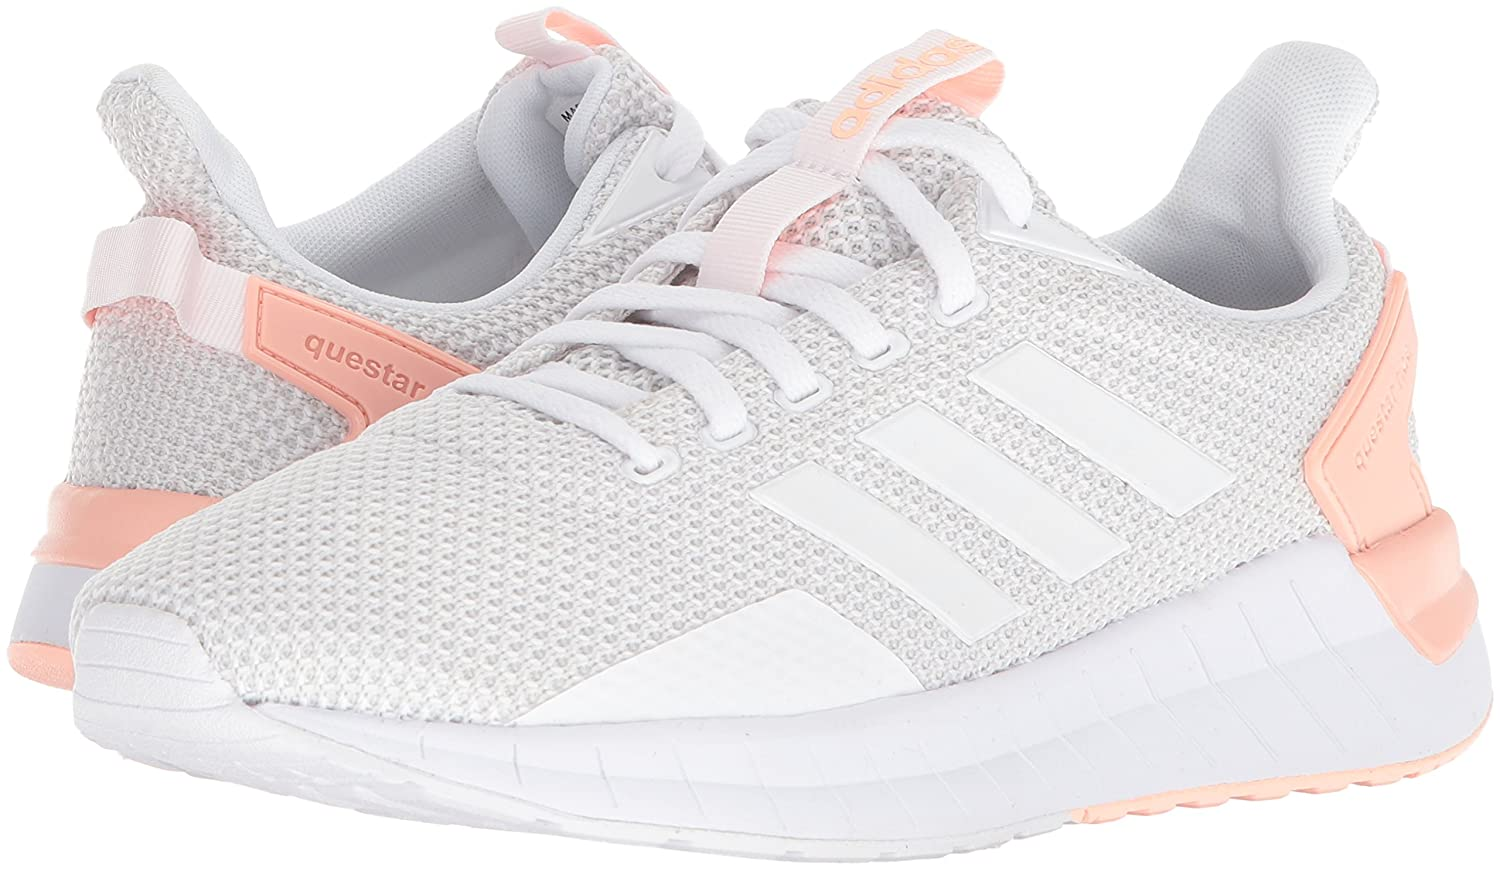 adidas Women's Questar Ride W Running Shoe B071S7L4V8 6 B(M) US|White/Grey One/Haze Coral